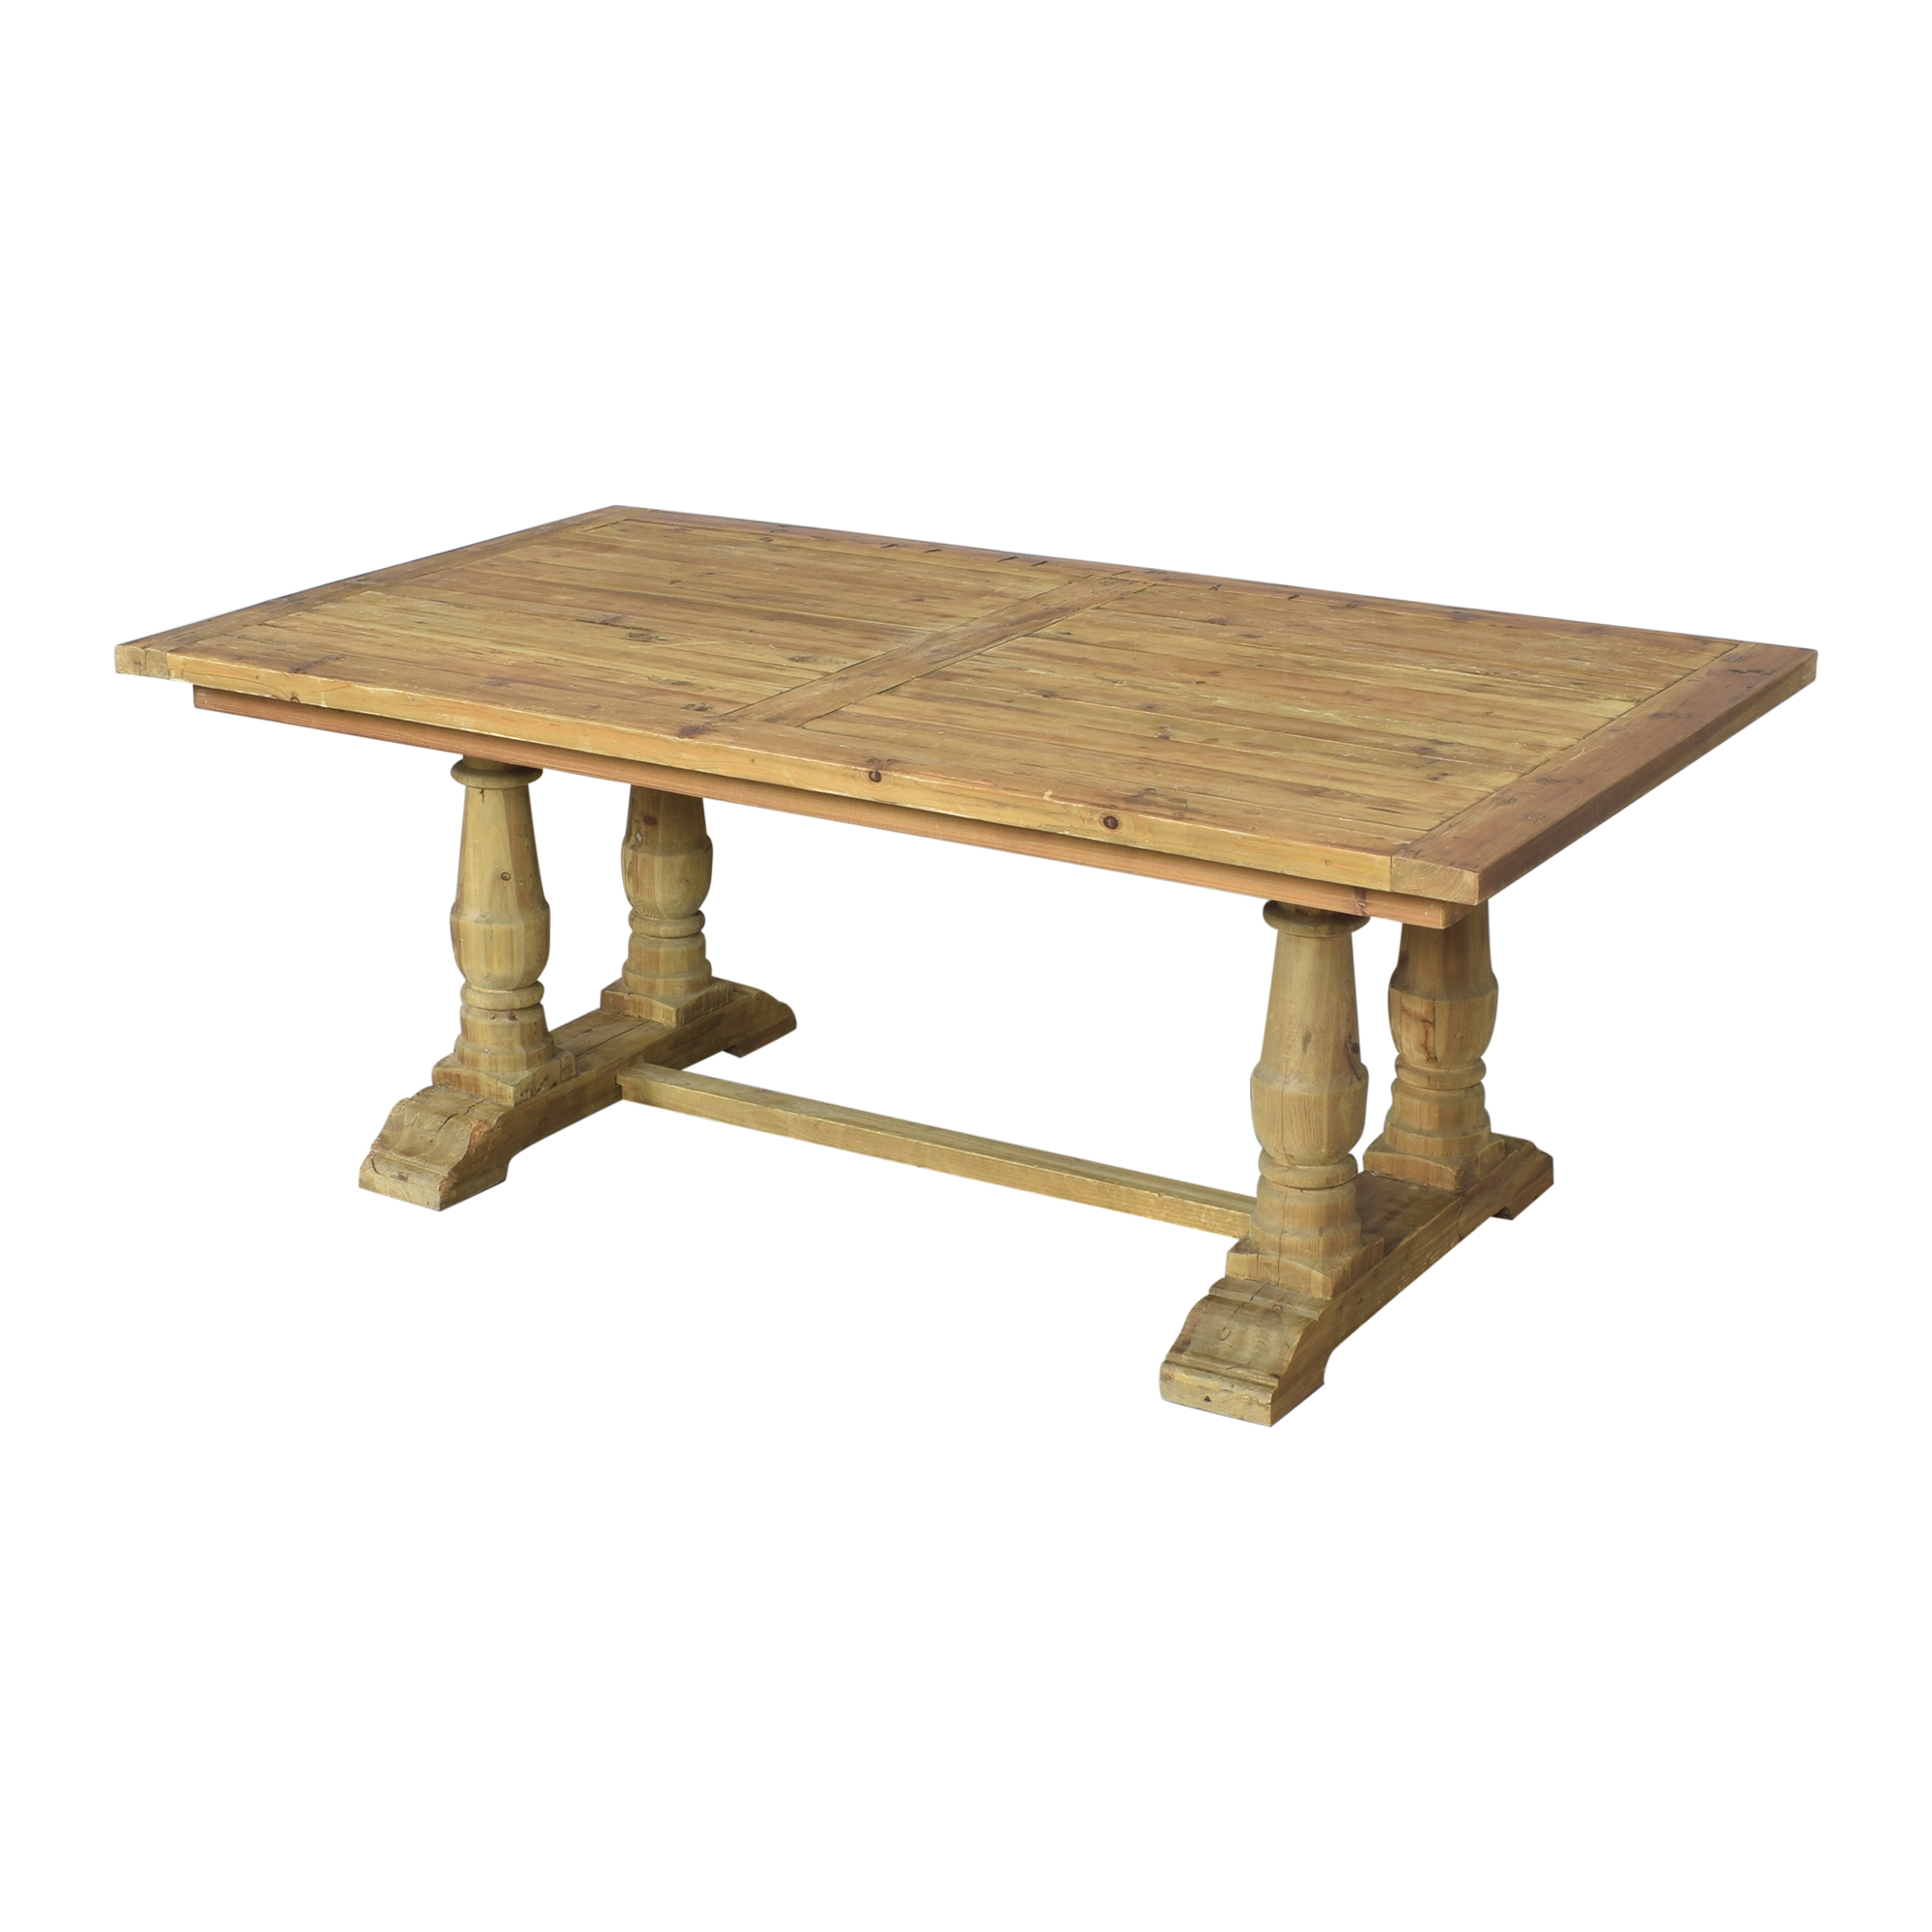 Uttermost Uttermost Stratford Dining Table ma